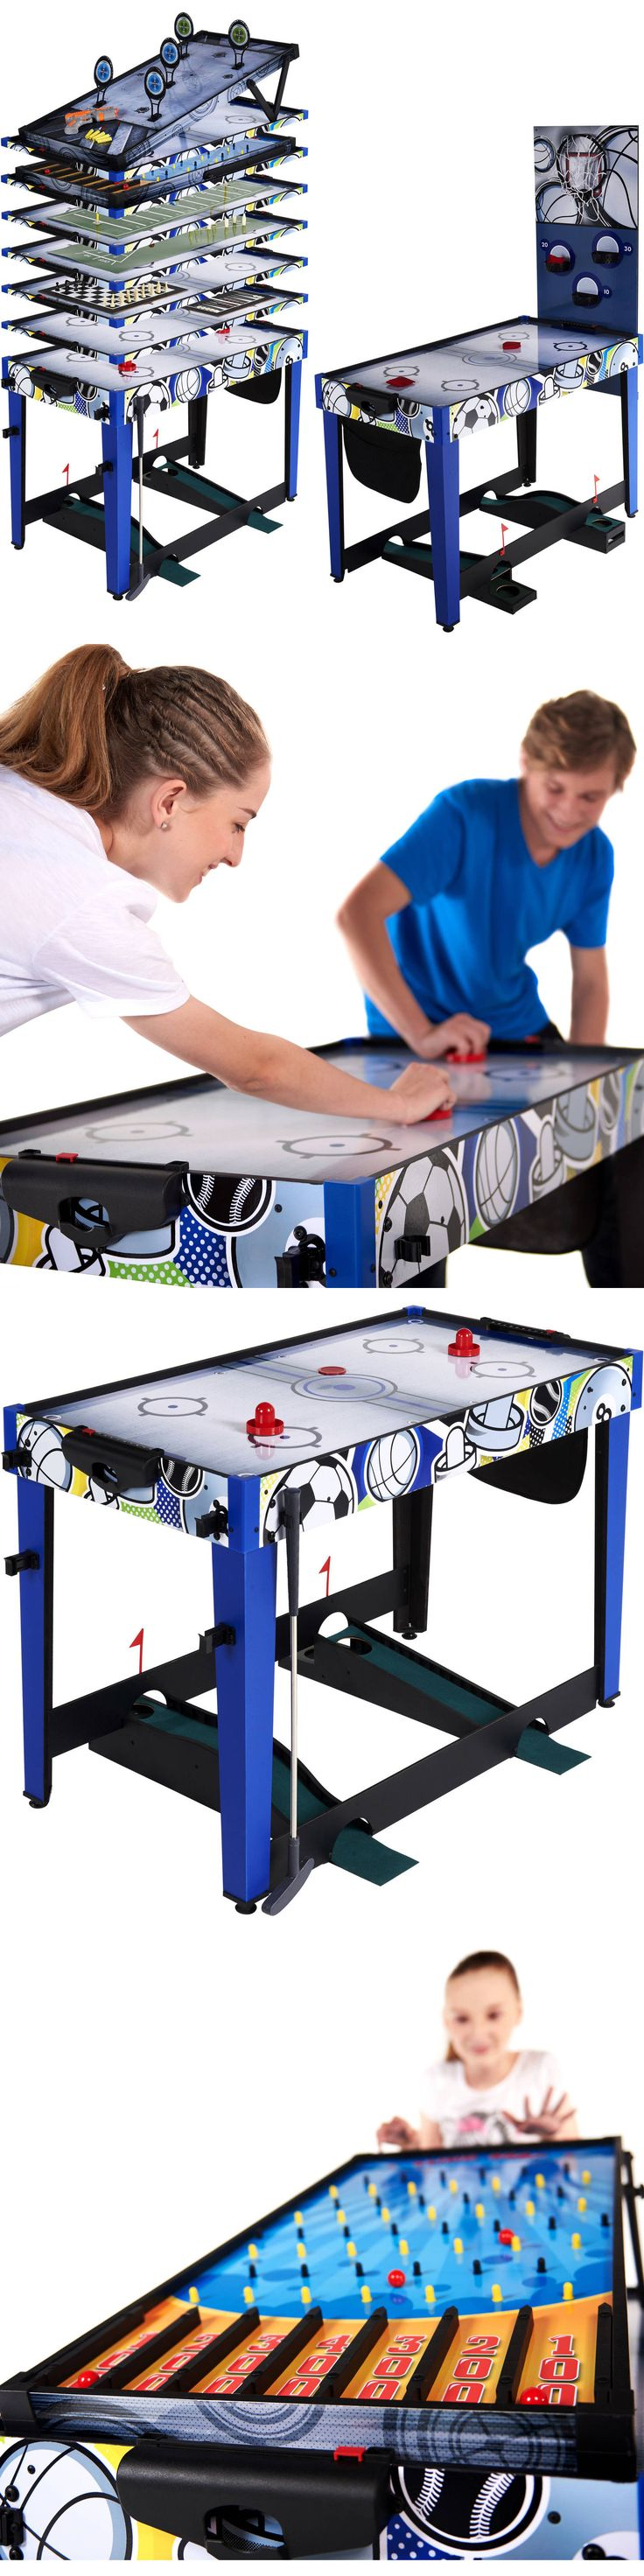 Other Indoor Games 36278: Multi Game Combo Table 48 Air Hockey Basketball Bean Bag Toss Darts Archery -> BUY IT NOW ONLY: $122.8 on eBay!